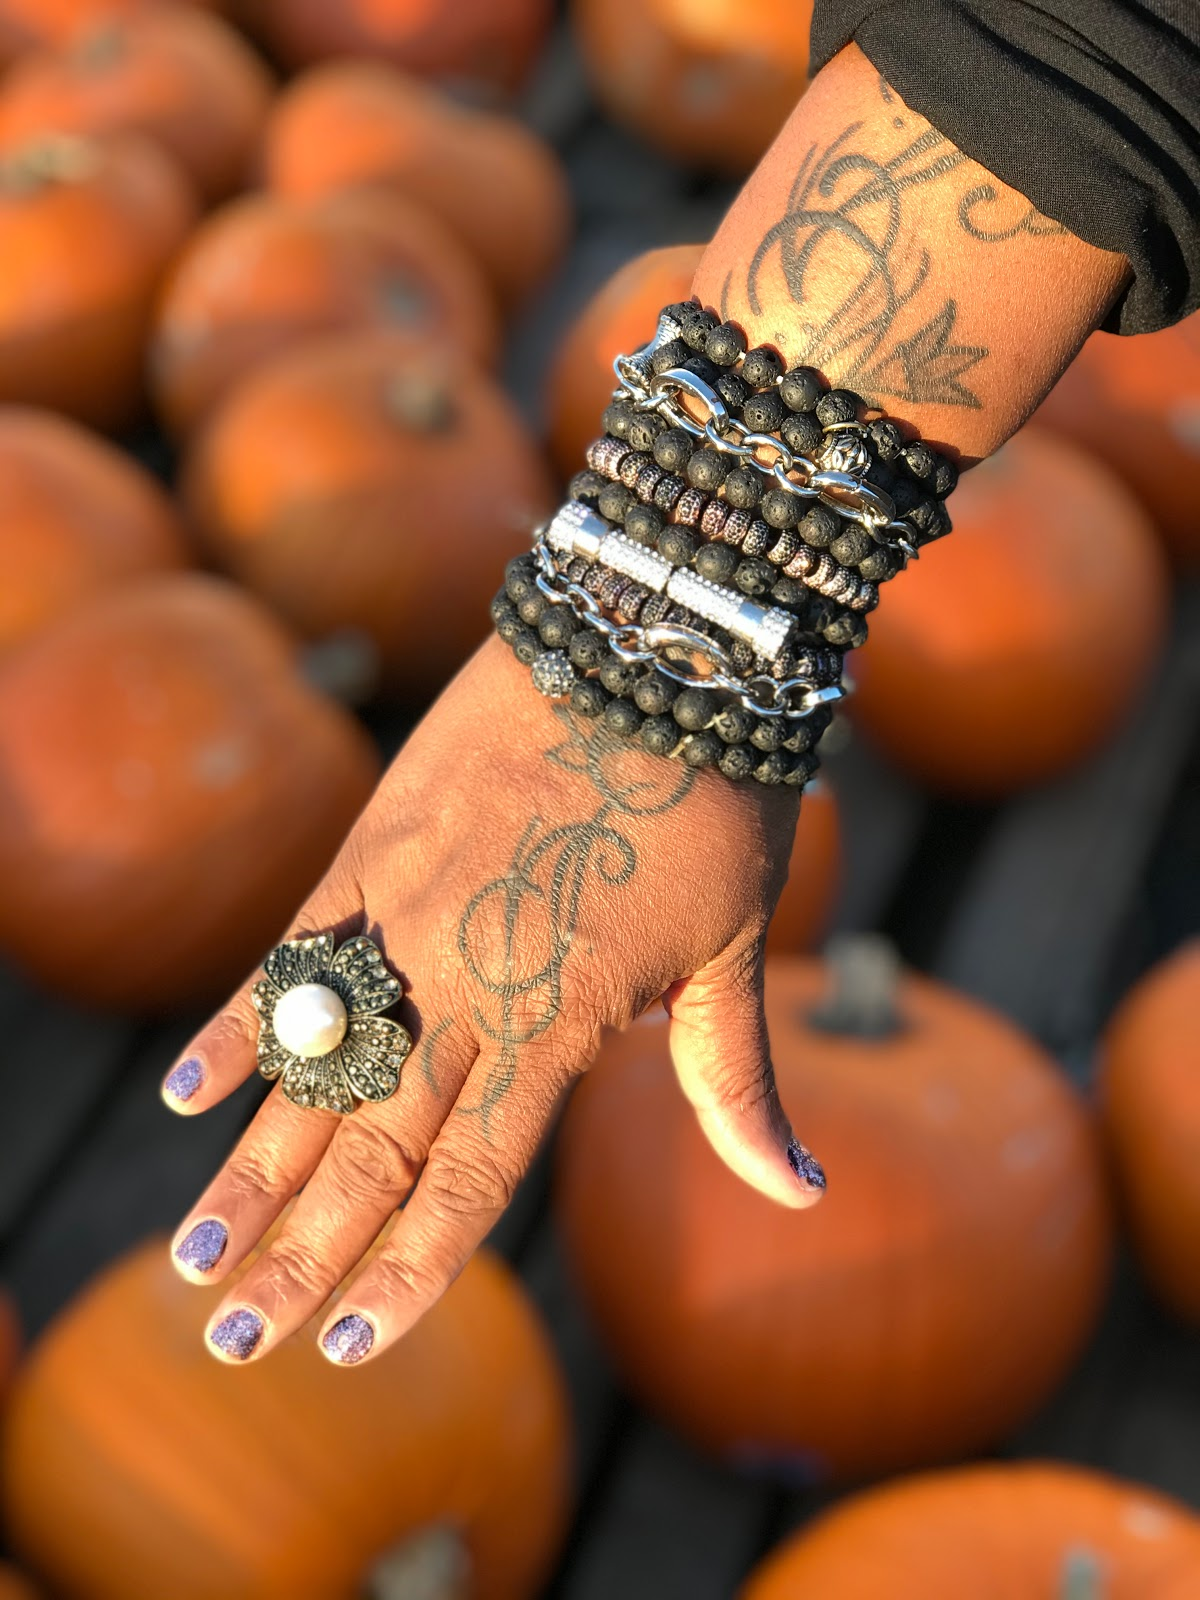 Tangie Bell shares how she uses bracelets to spice up her forty-something style